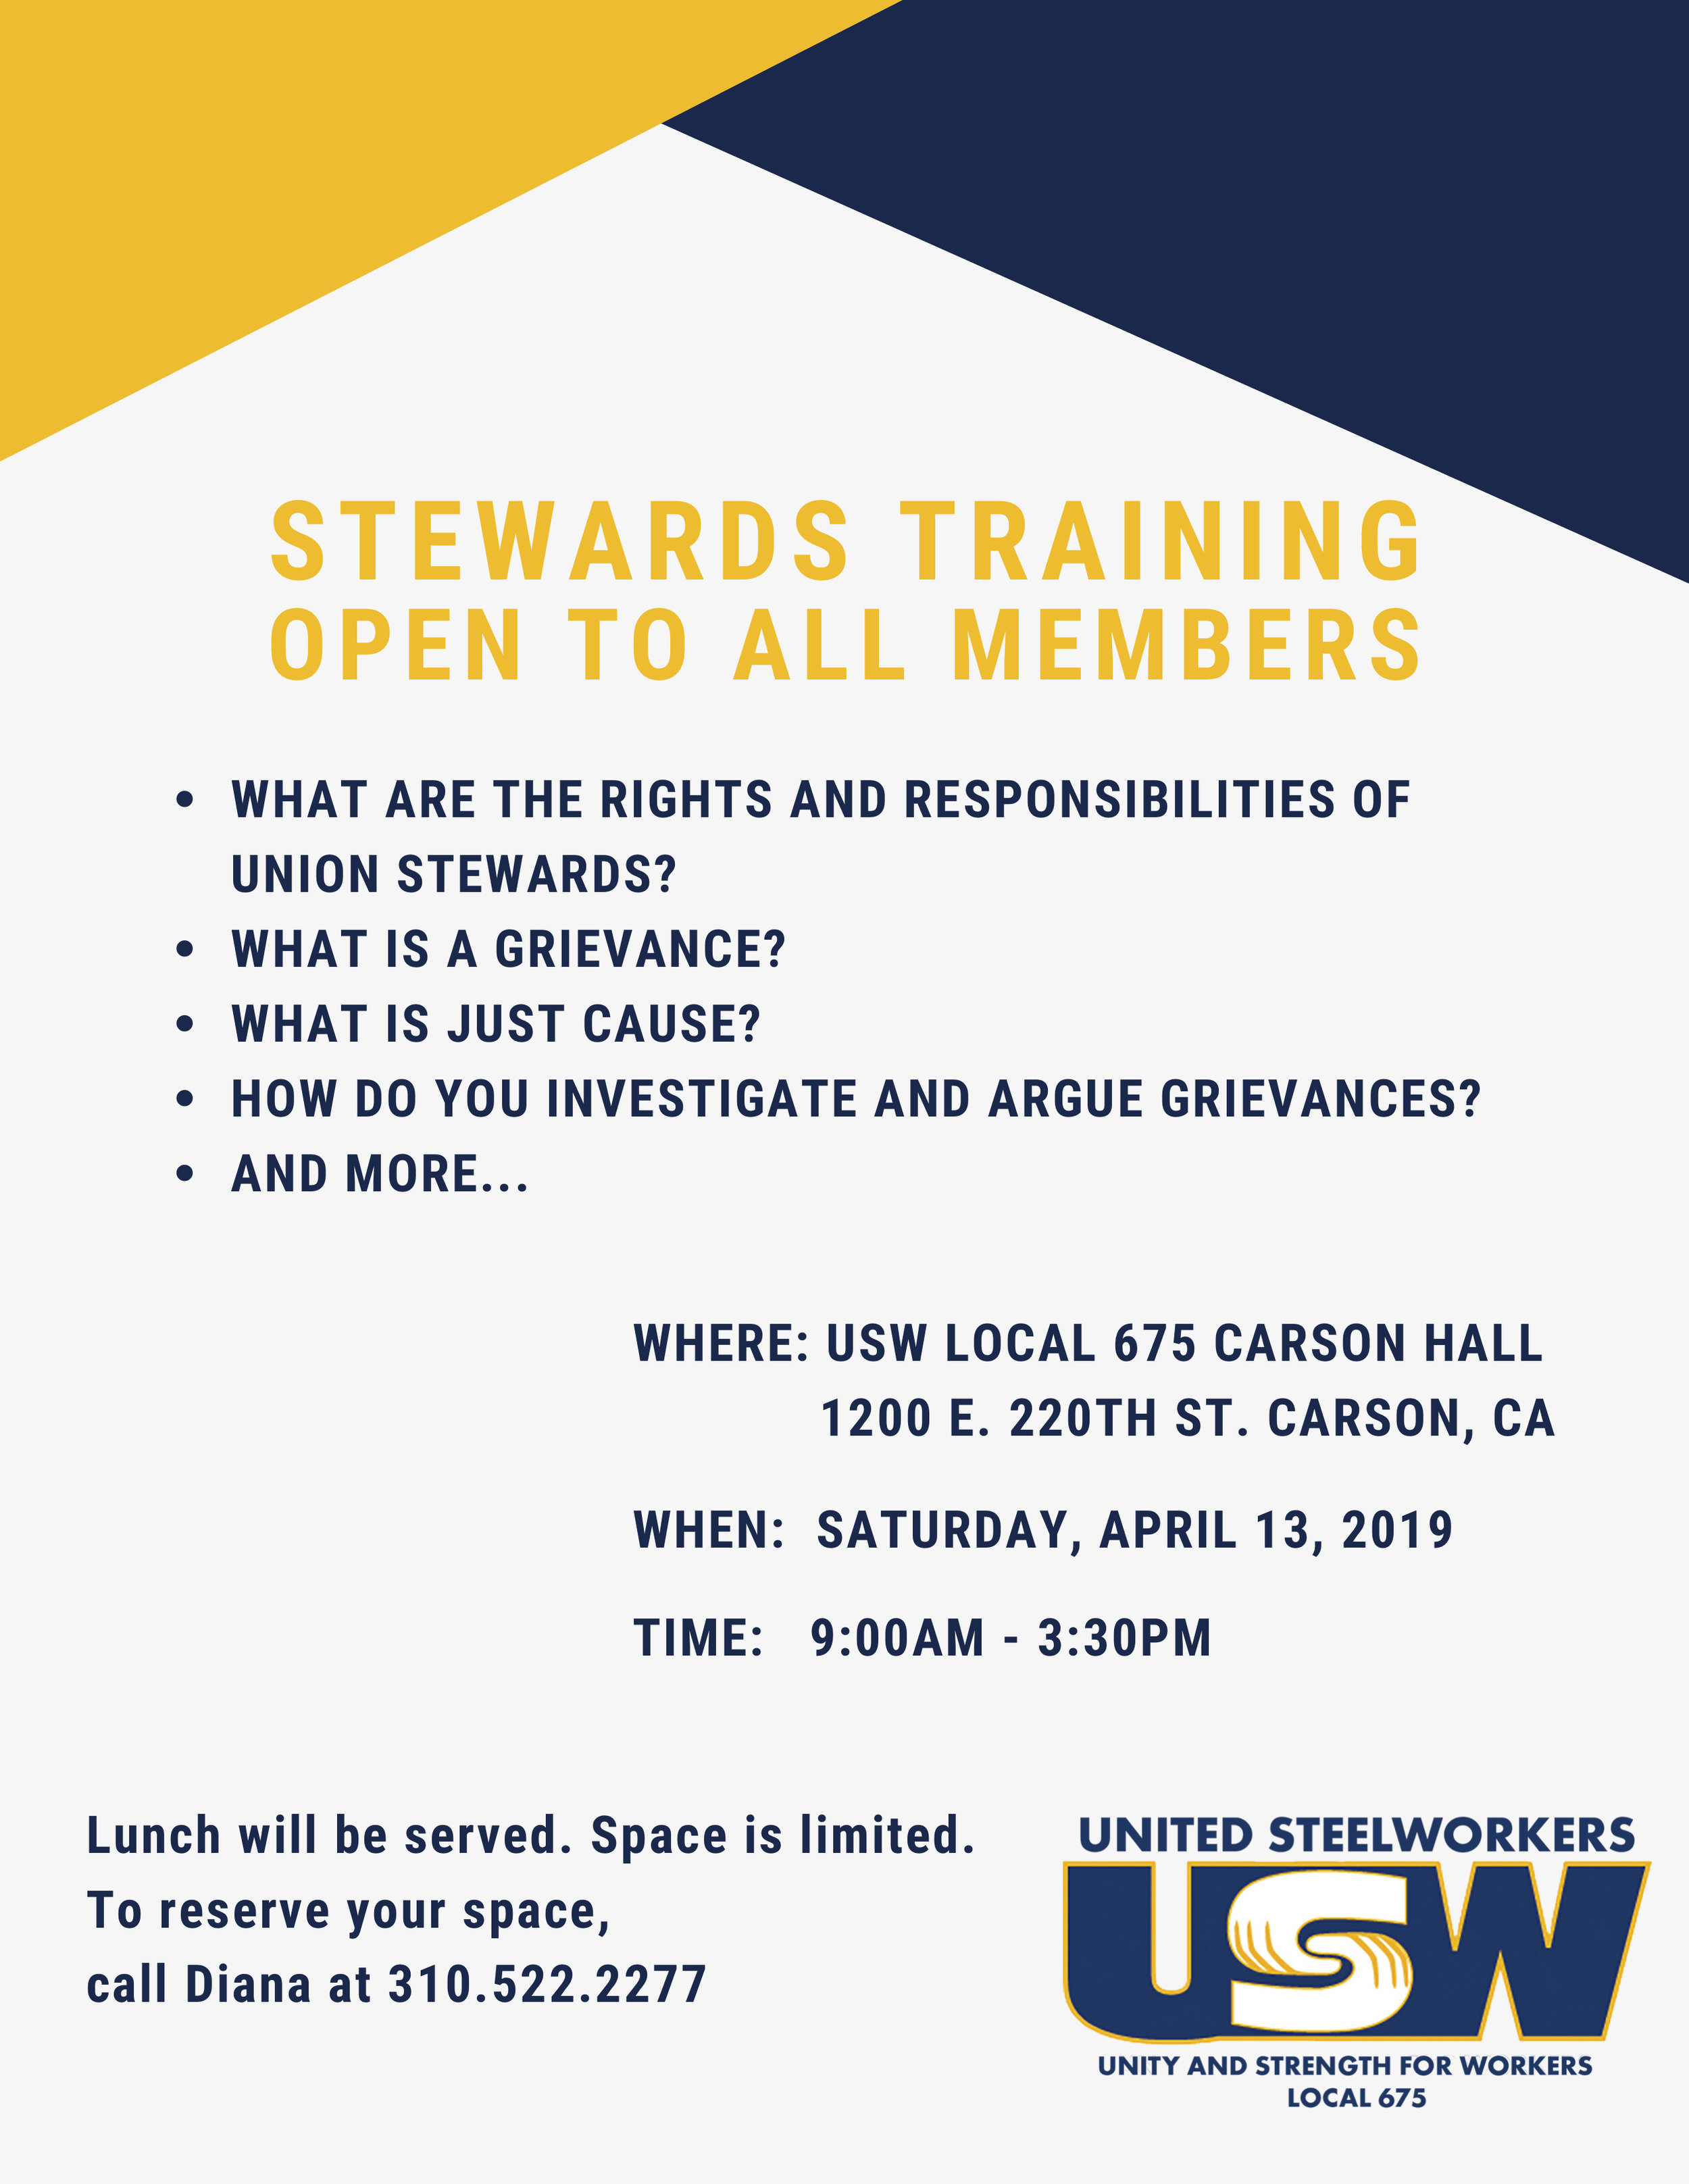 Stewards Training 4.13.19.jpg